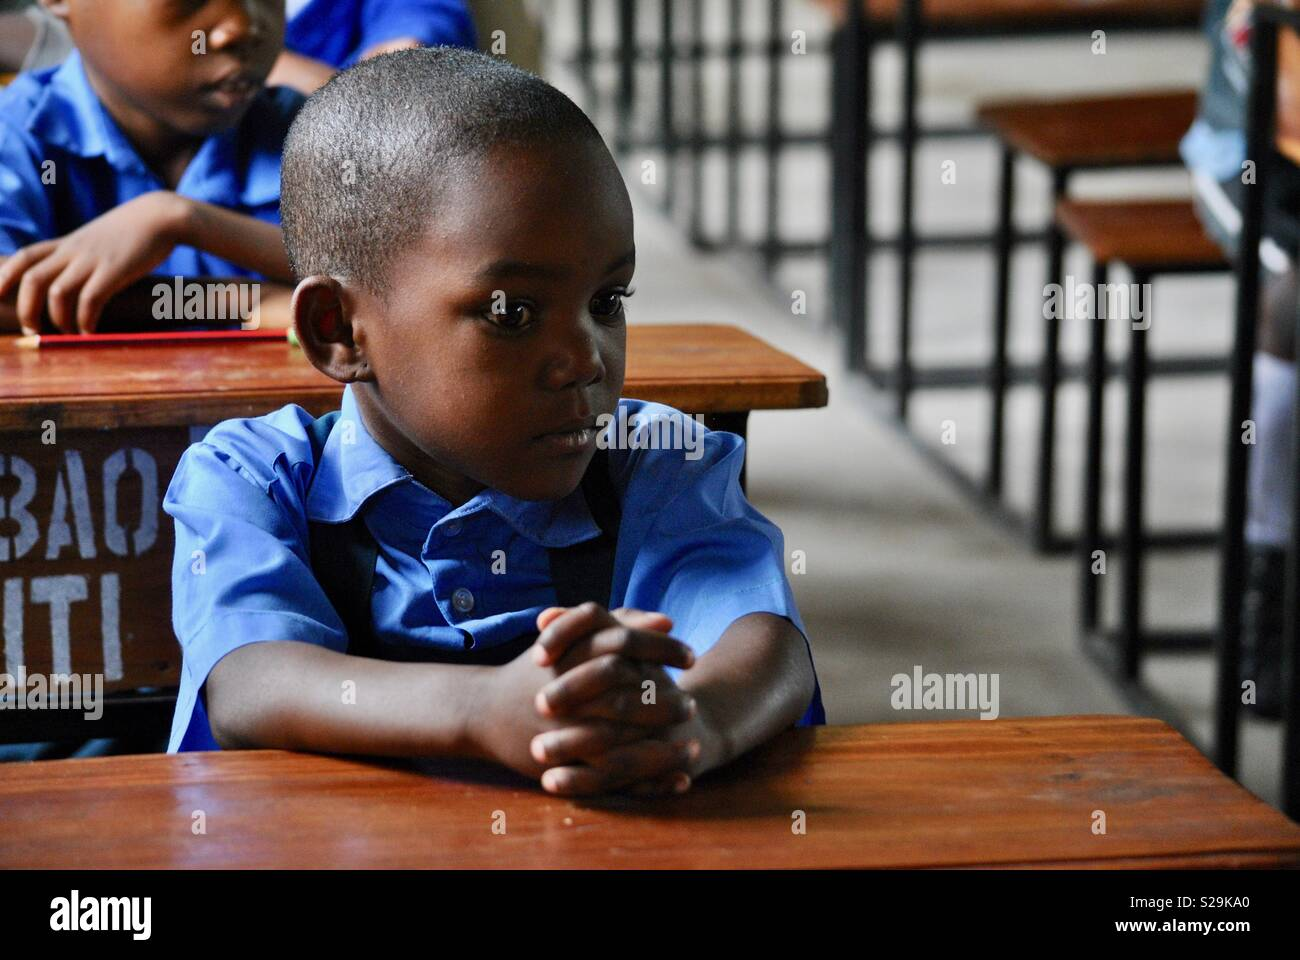 Tanzanian boys at School funded by charities based in the UK - Stock Image